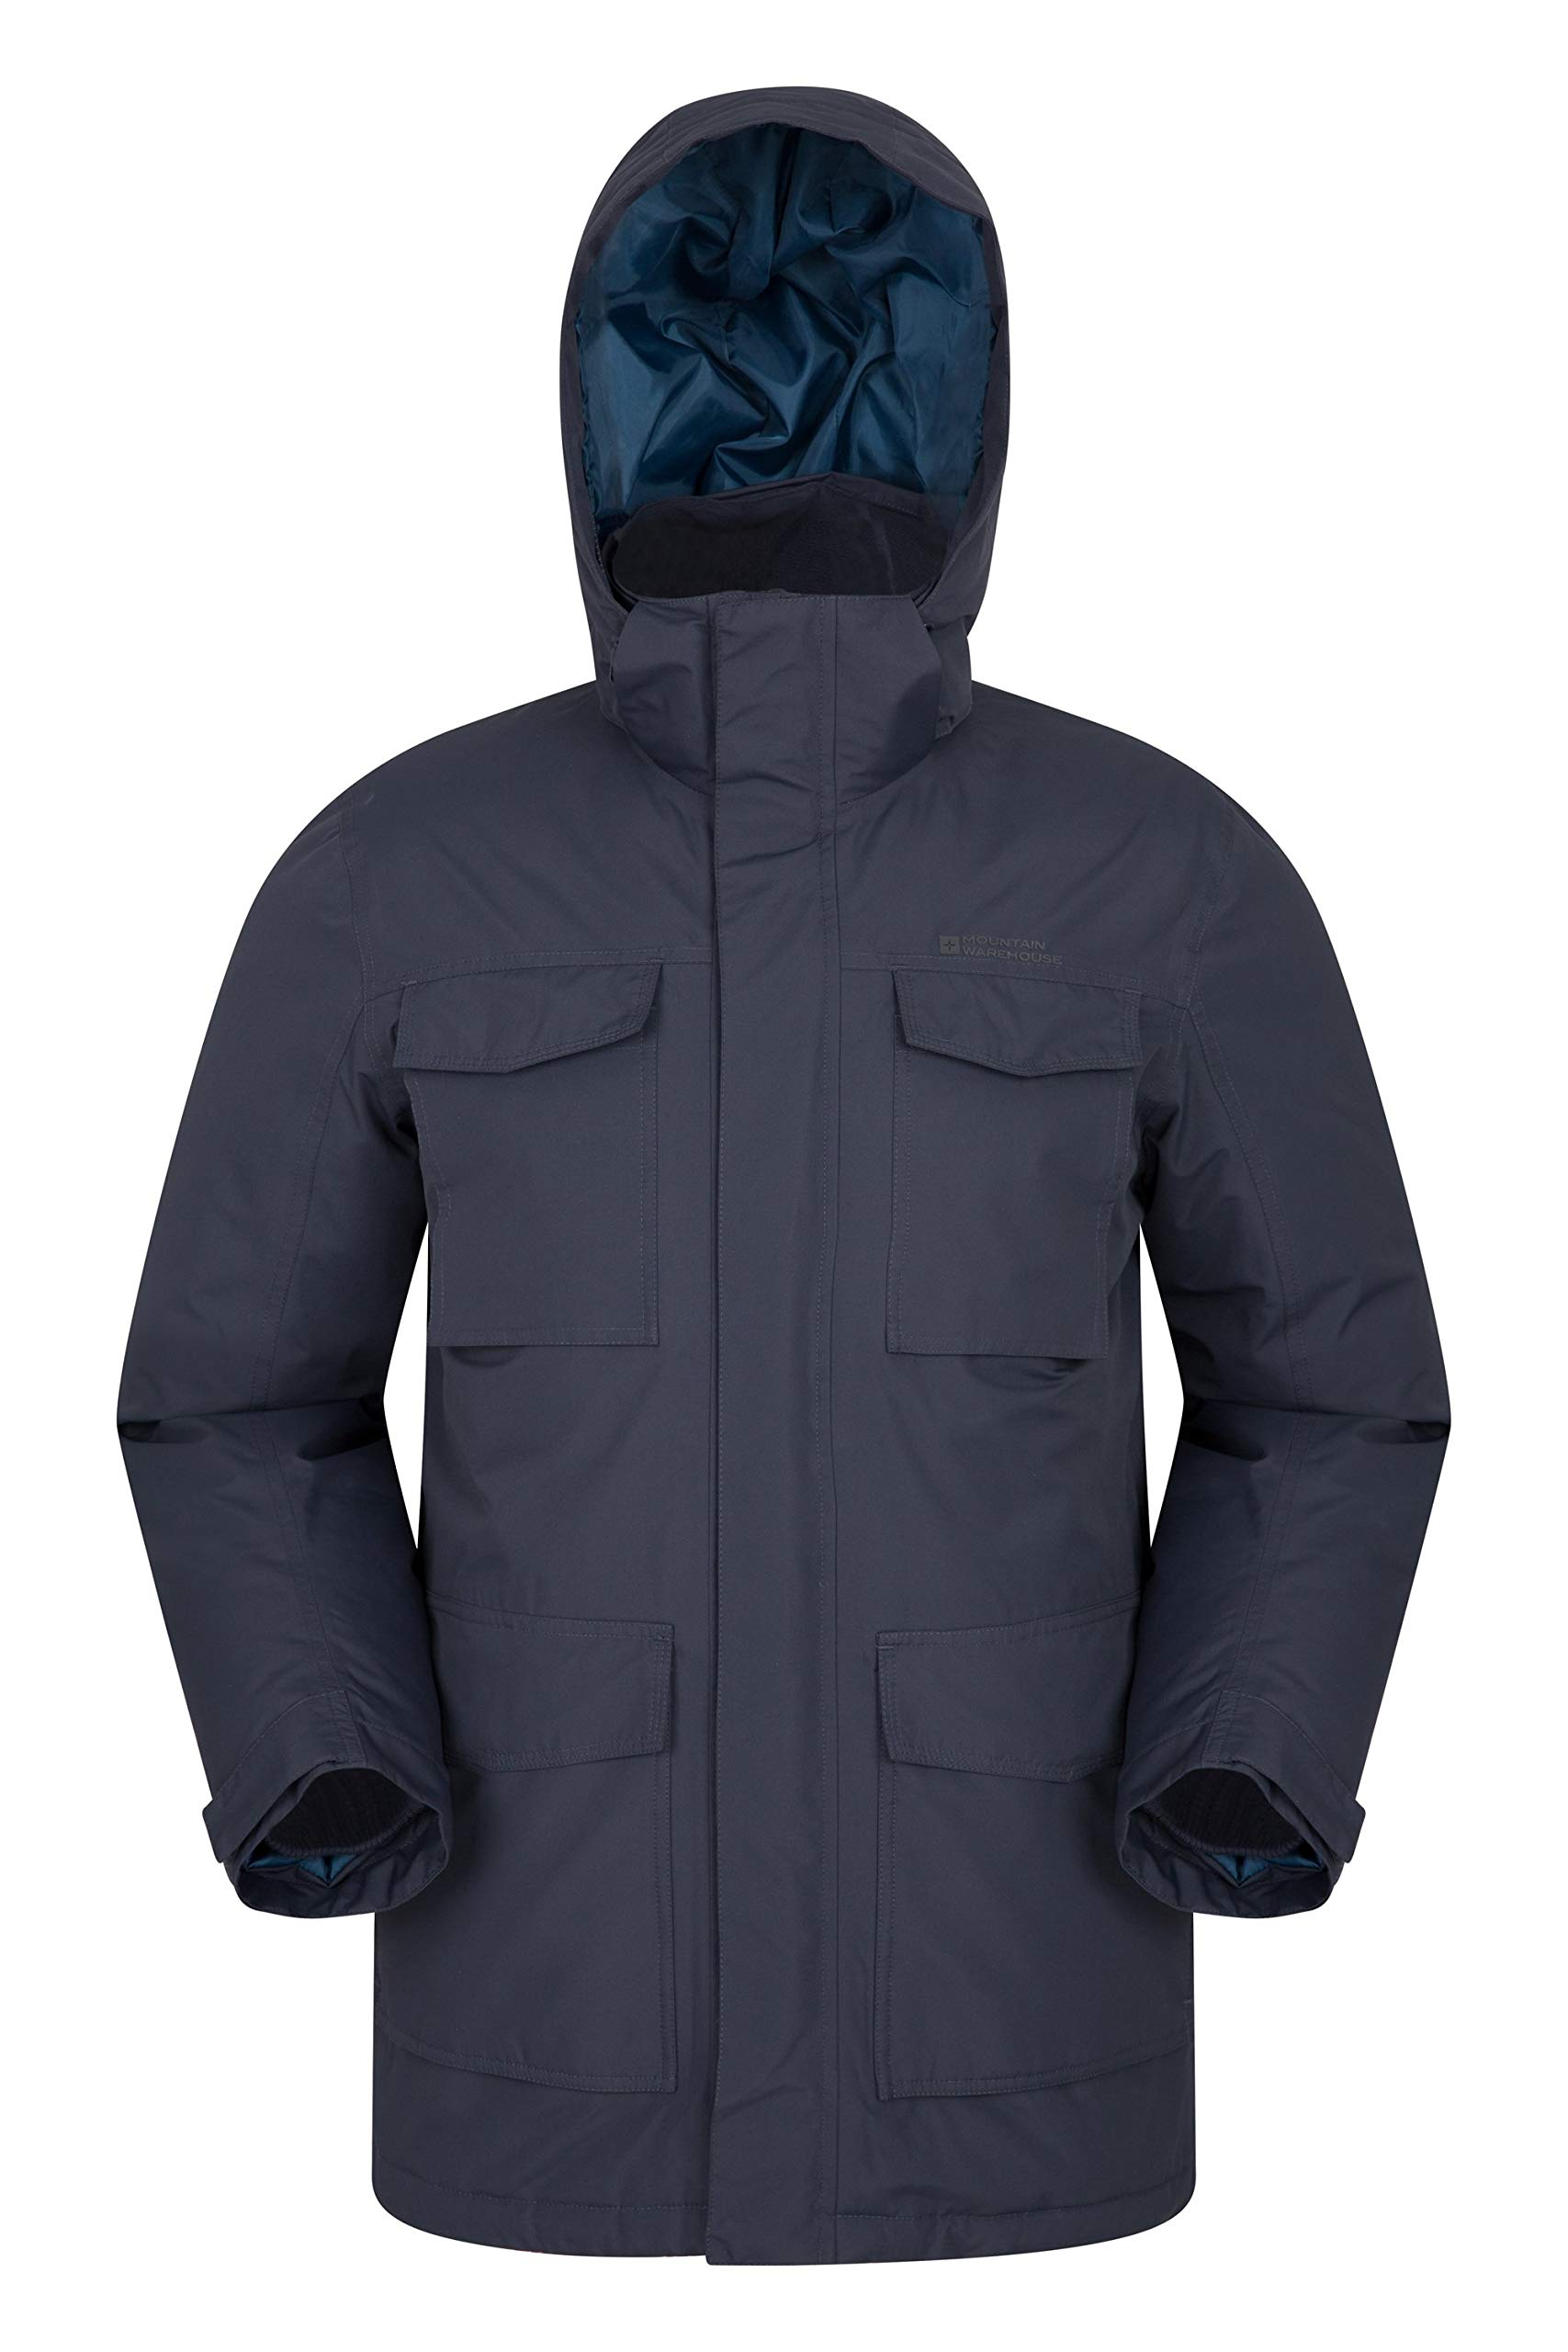 Mountain Warehouse Concord Extreme Winter